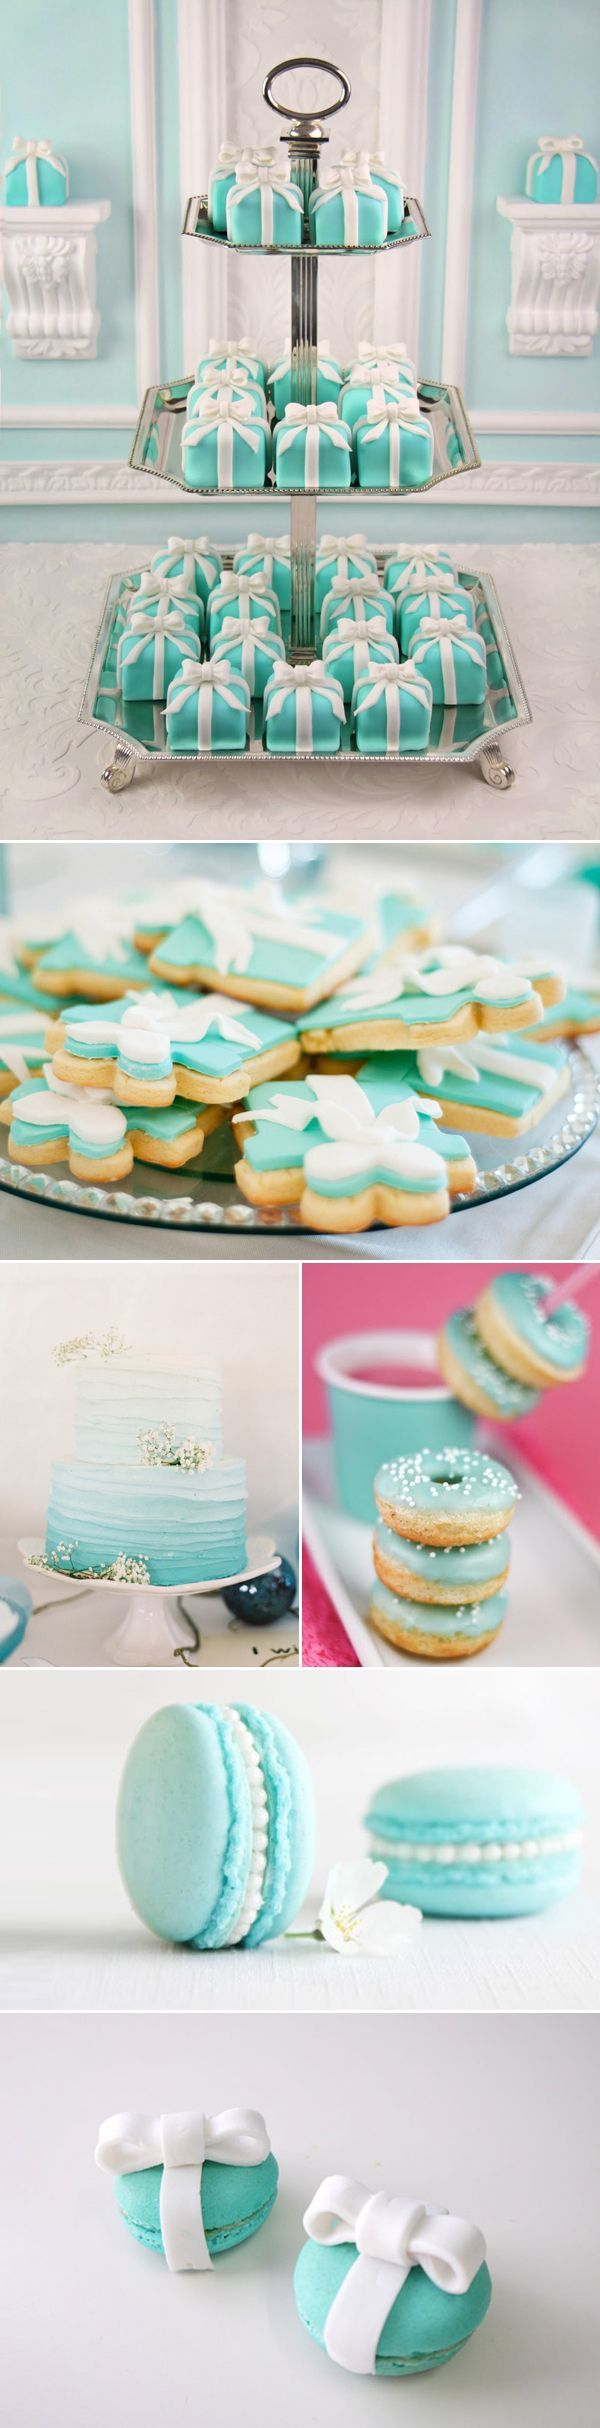 Classic Elegance! Tiffany-inspired Wedding Design Ideas! - Praise Wedding Breakfast at Tiffany's Bridal Shower: love the mini cakes and cookies @abbylondyn @kristenconner7 @cl_conner: